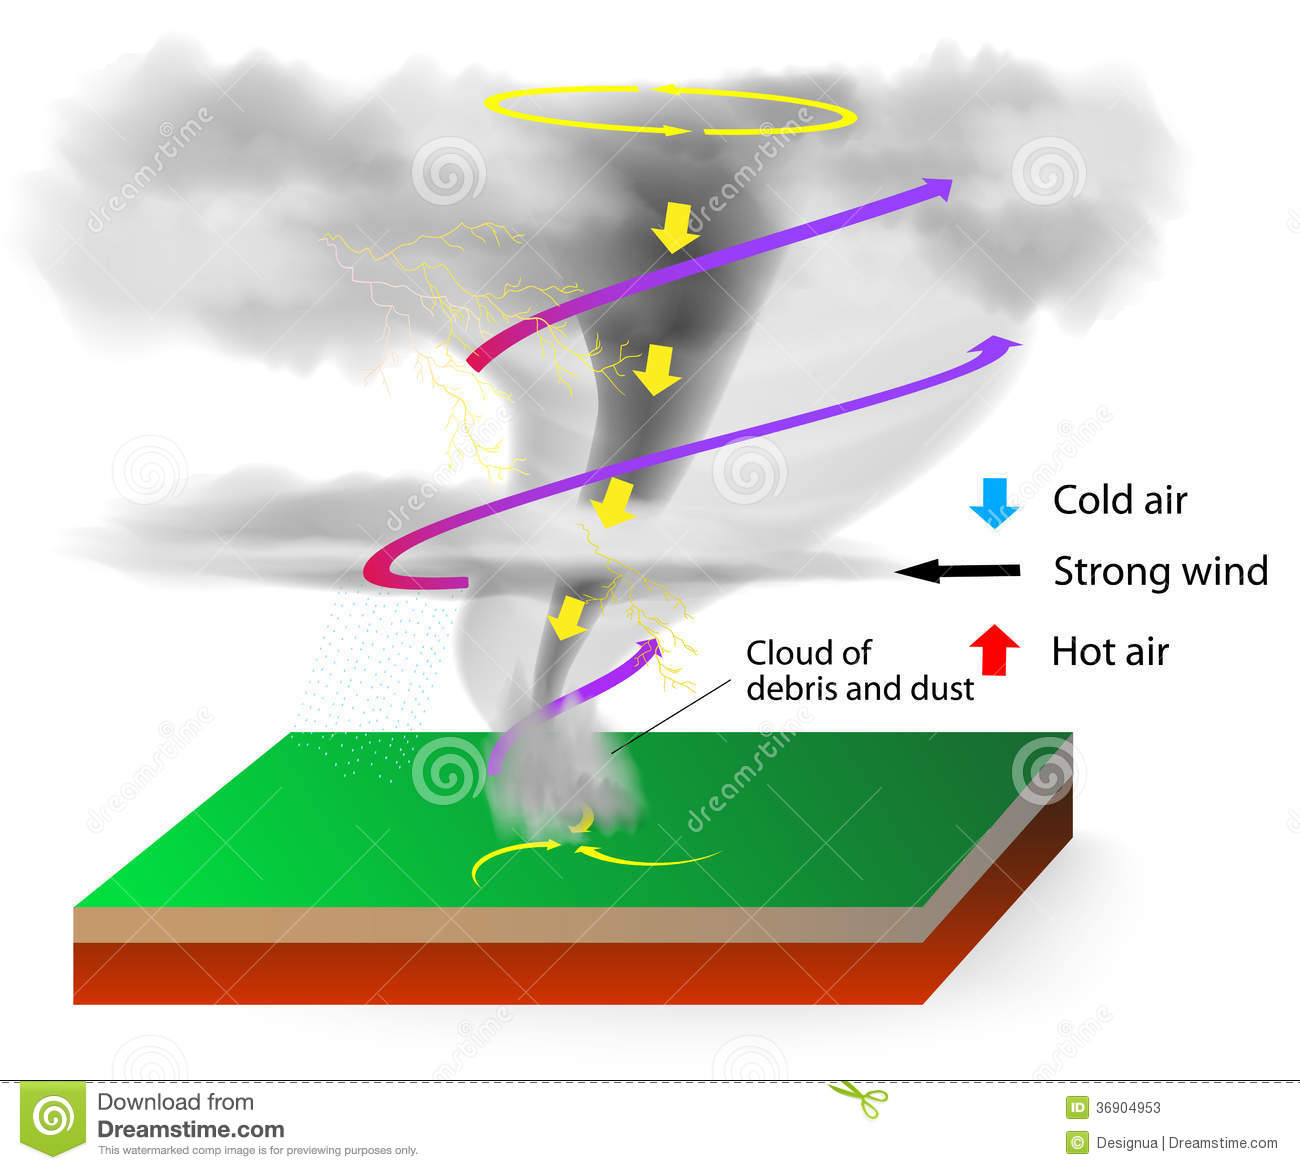 a description of thunderstorms as where lightning and thunder occur A thunderstorm is a storm where you hear thunder and see lightning thunderstorms normally occur in hot, humid weather so are mostly in summer.